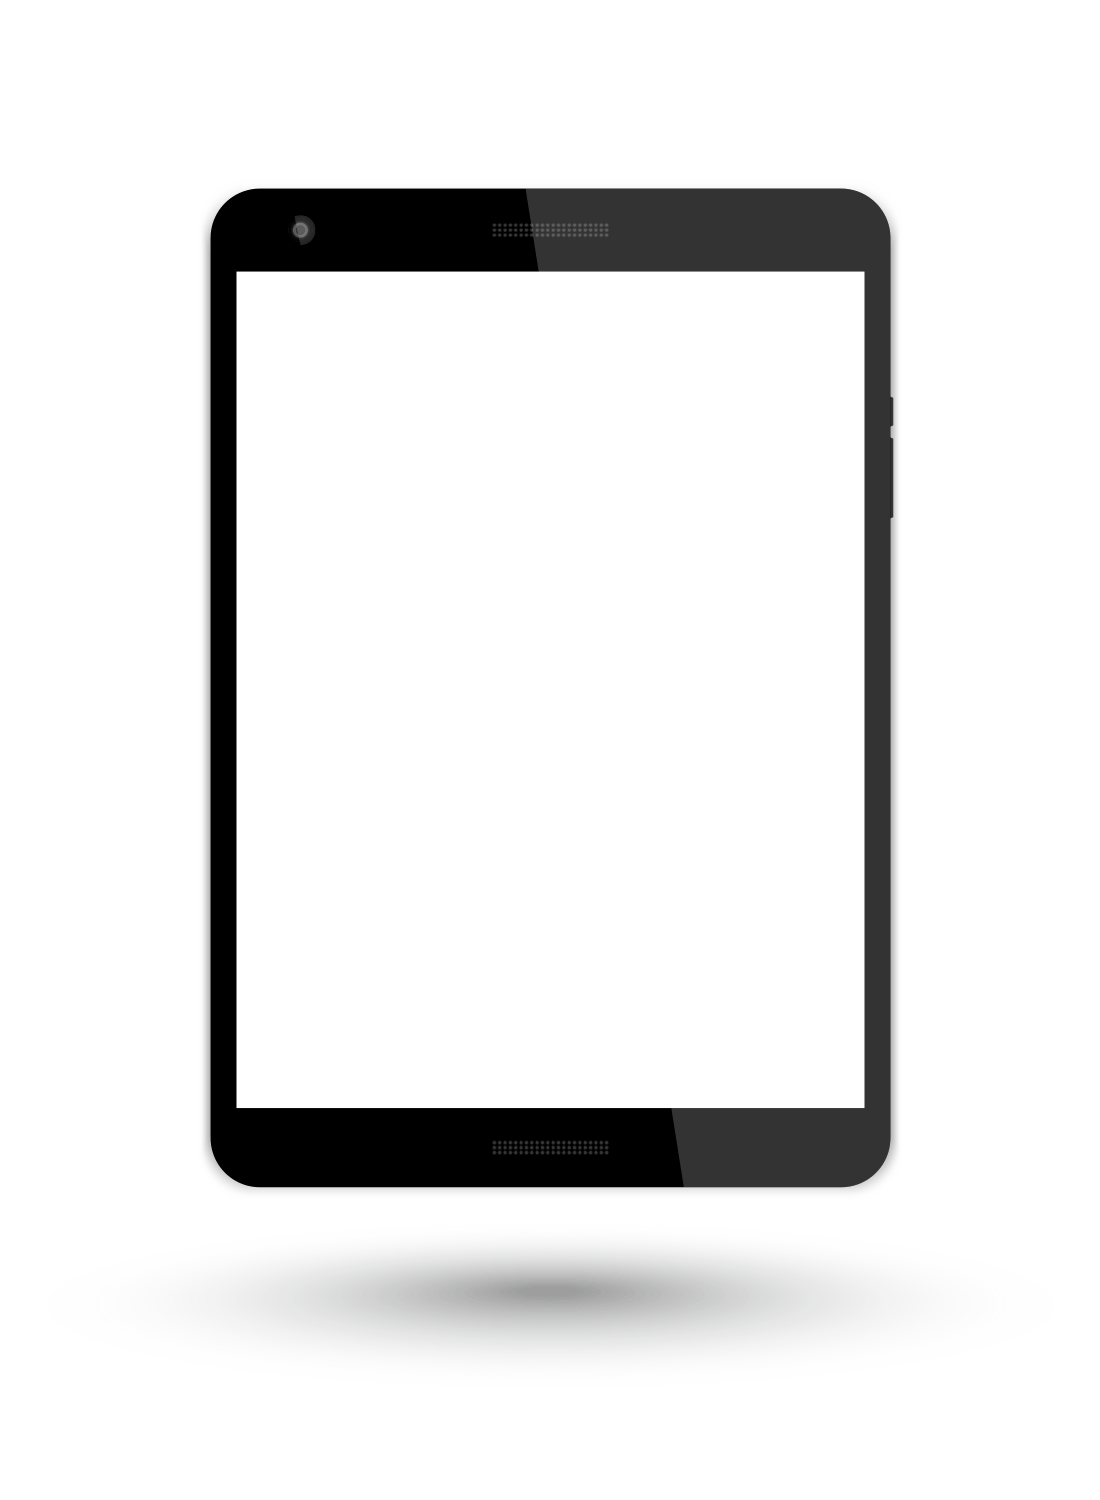 tablet isolated on transparent background